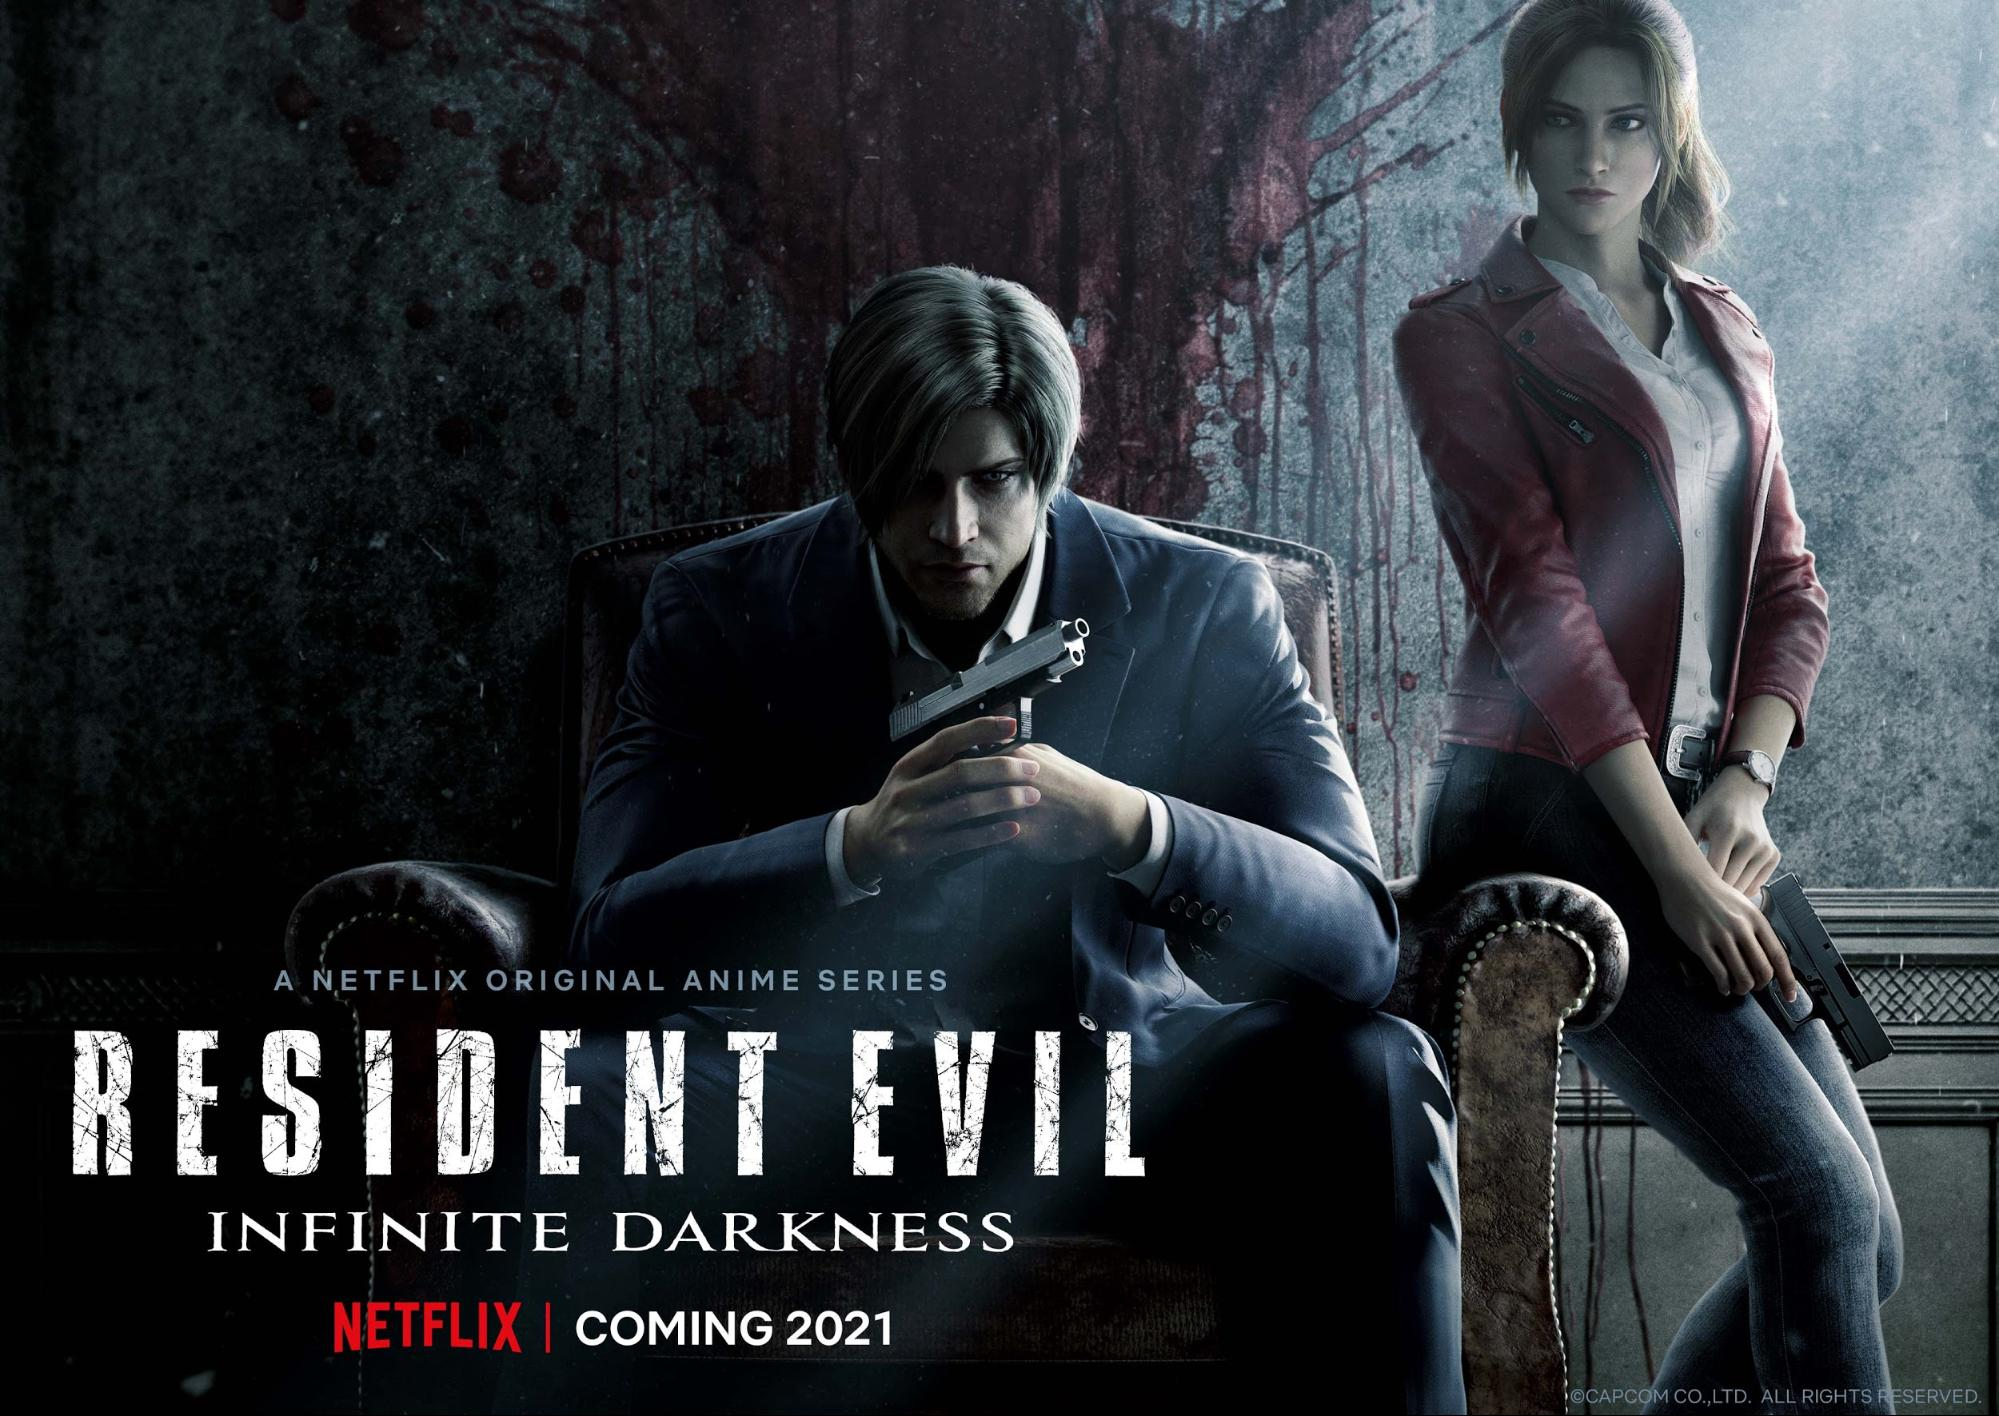 About Netflix - Netflix announces the original anime series 'RESIDENT EVIL: Infinite  Darkness' coming in 2021